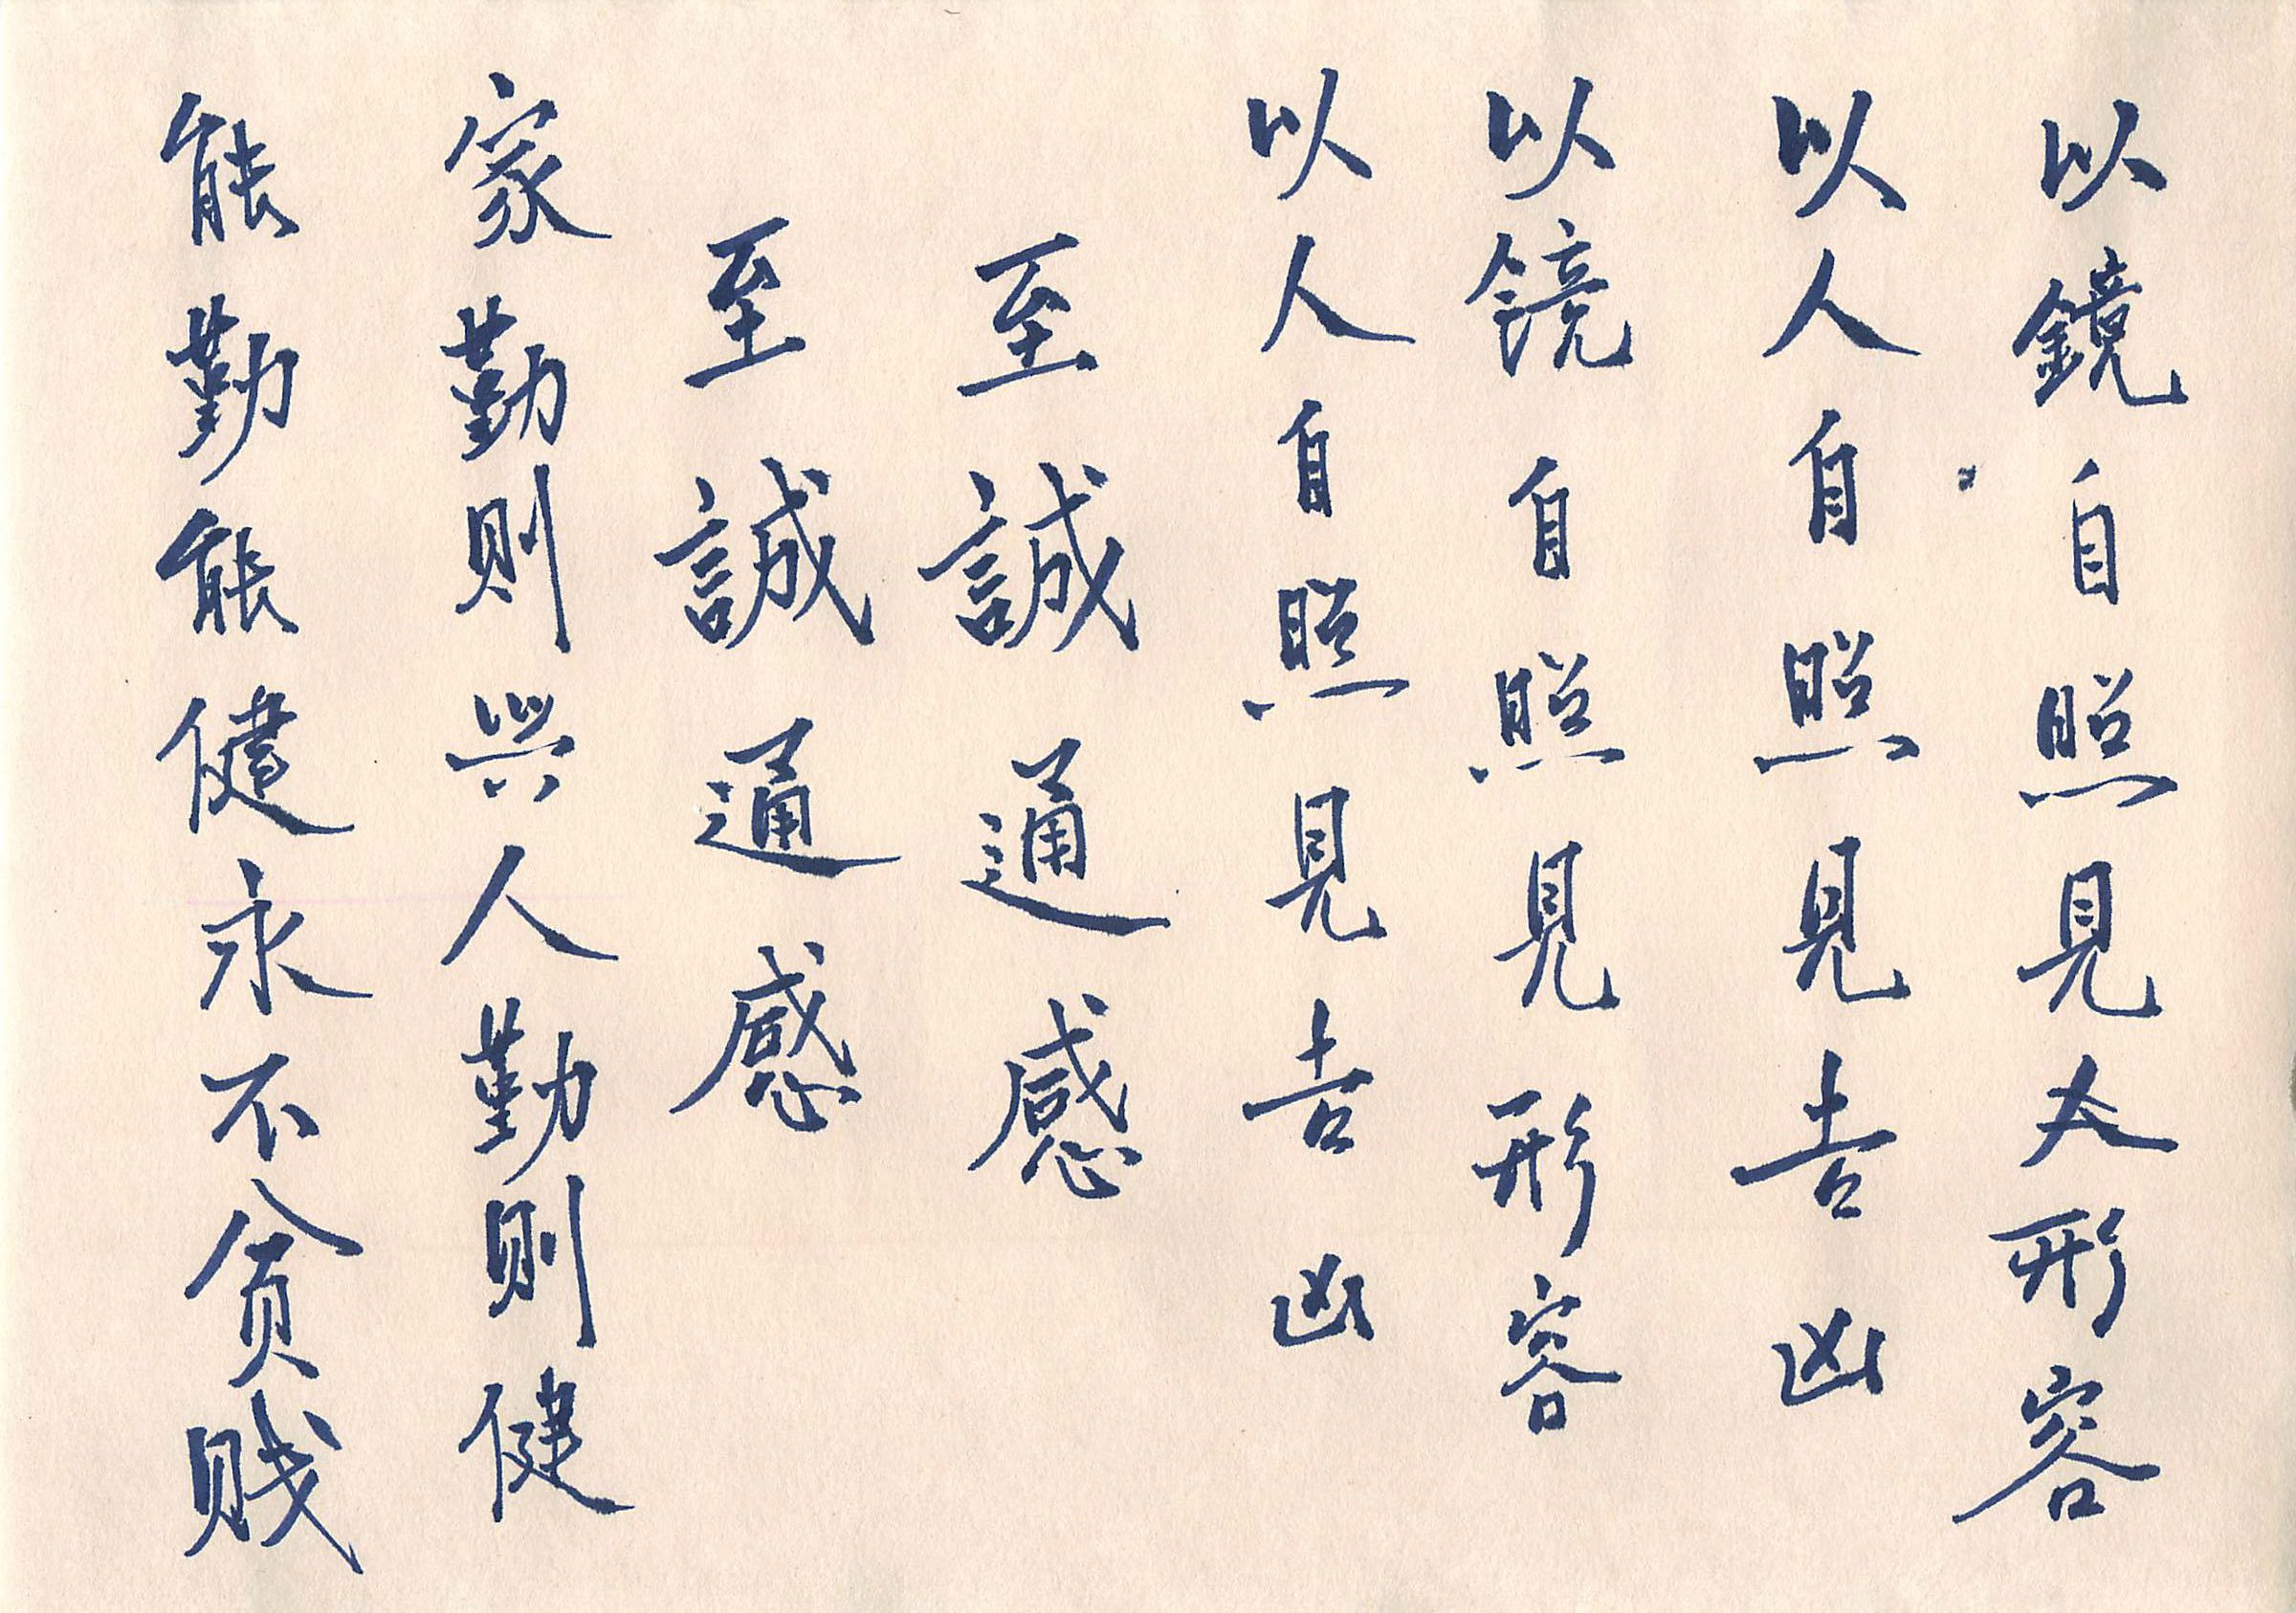 Chinese Calligraphy With Brush Pen Calligraphy